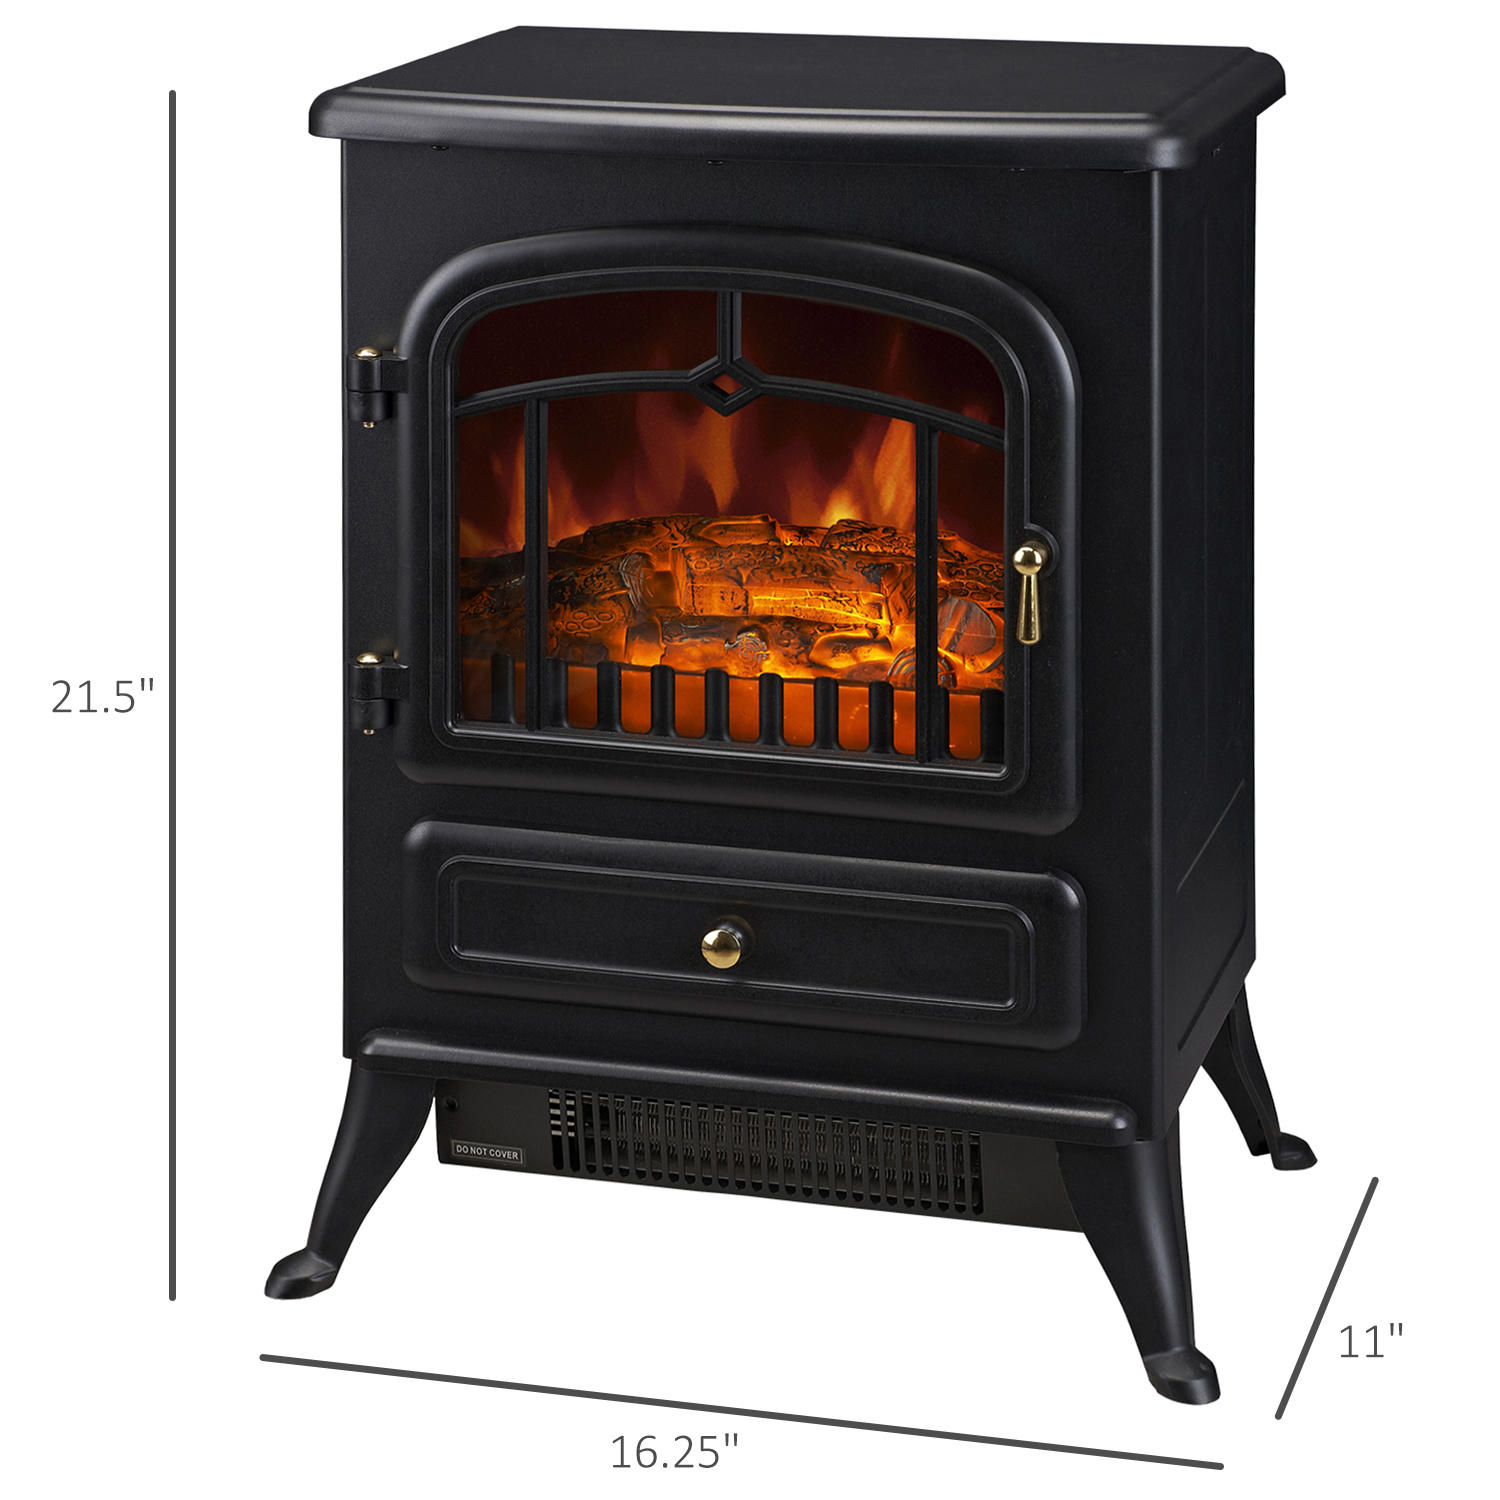 Homcom Freestanding Electric Fireplace Heater In Black With Realistic Flames 21 H 1500w Walmart Com Walmart Com